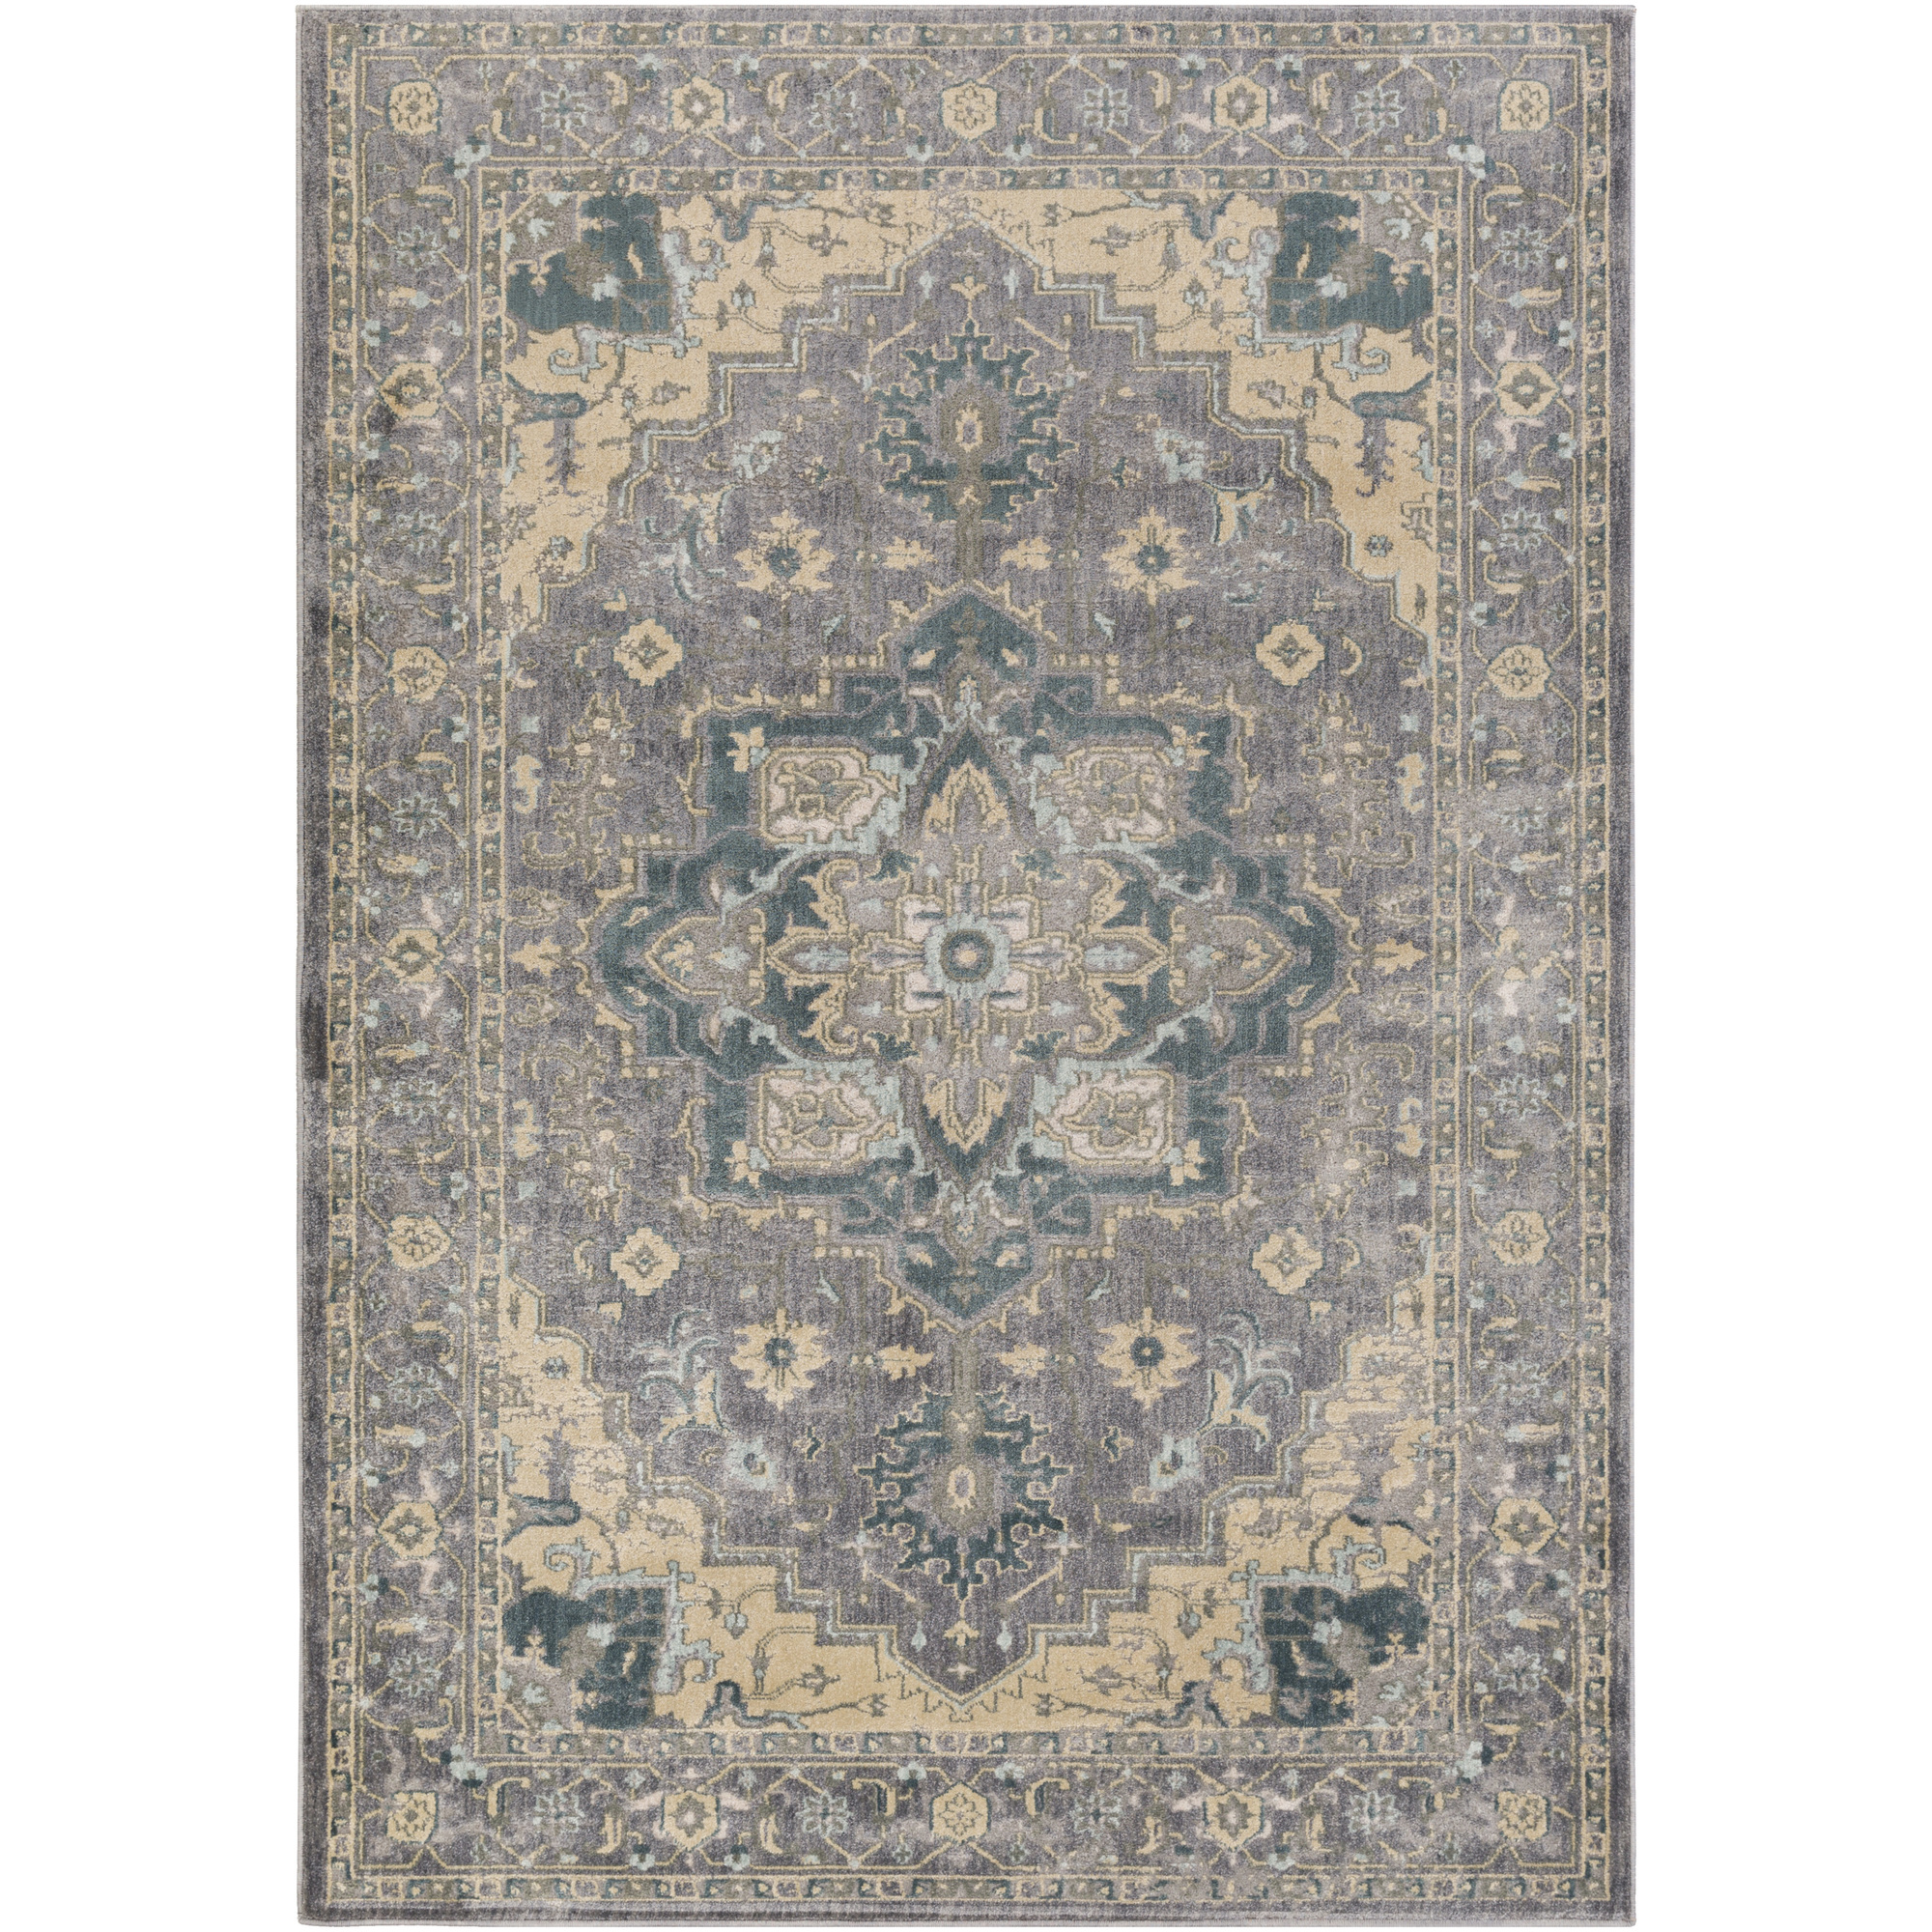 "Art of Knot Carmen 1'10"" x 2'11"" Rectangular Area Rug"